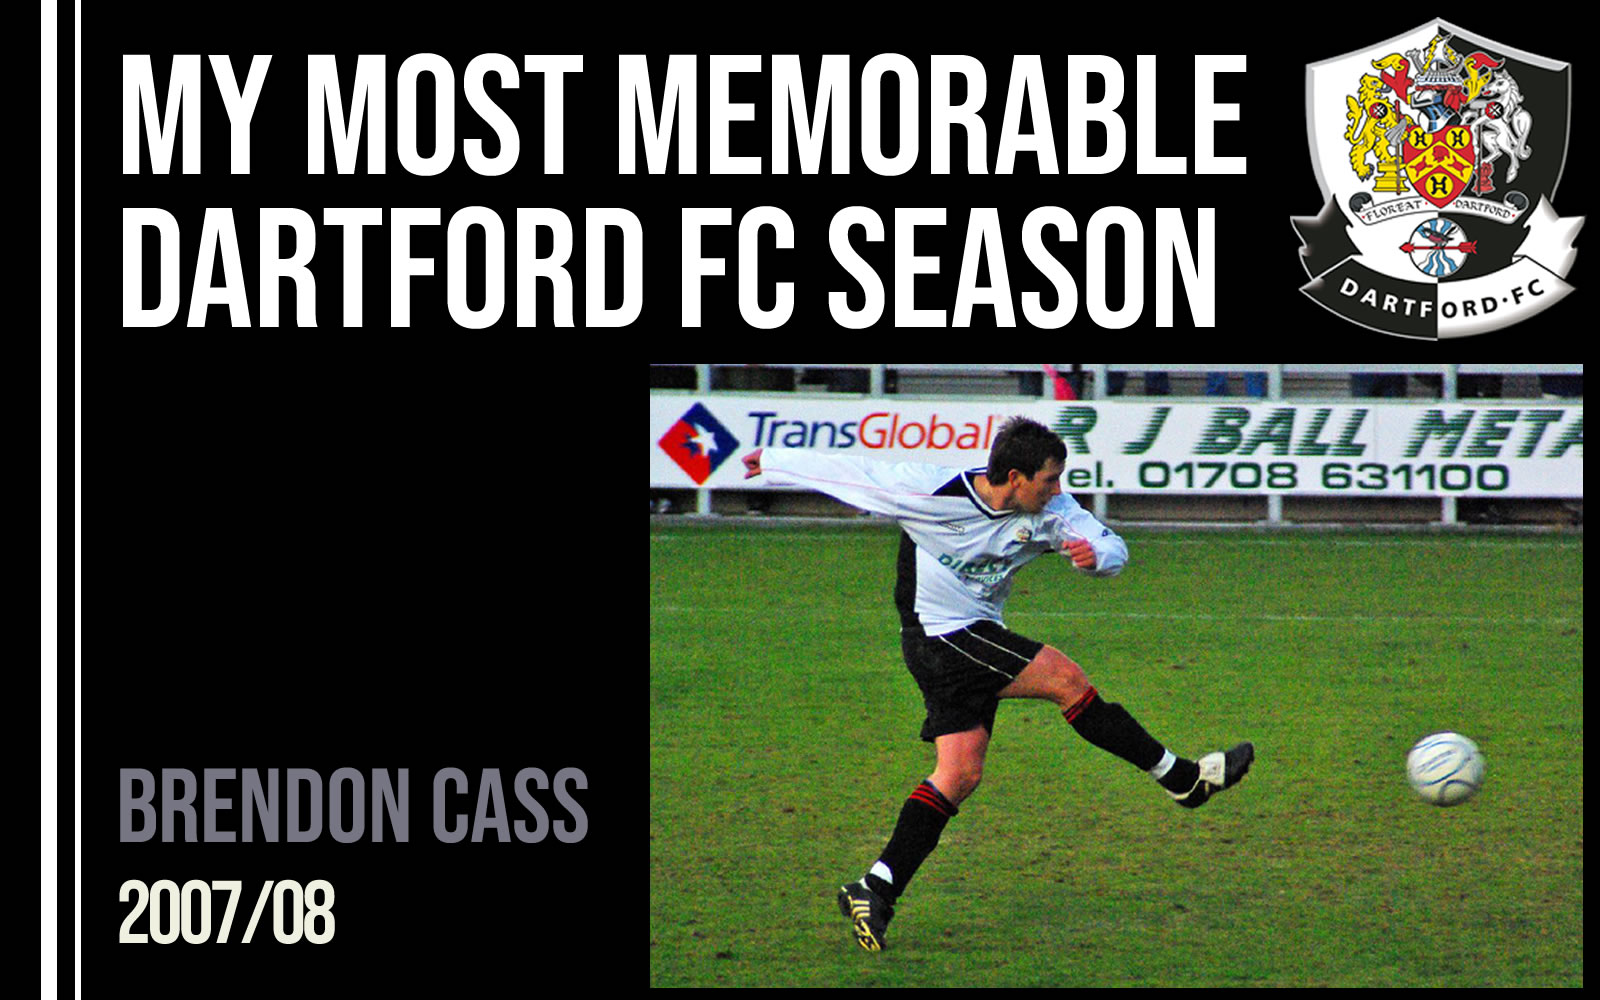 My most memorable season - Brendon Cass